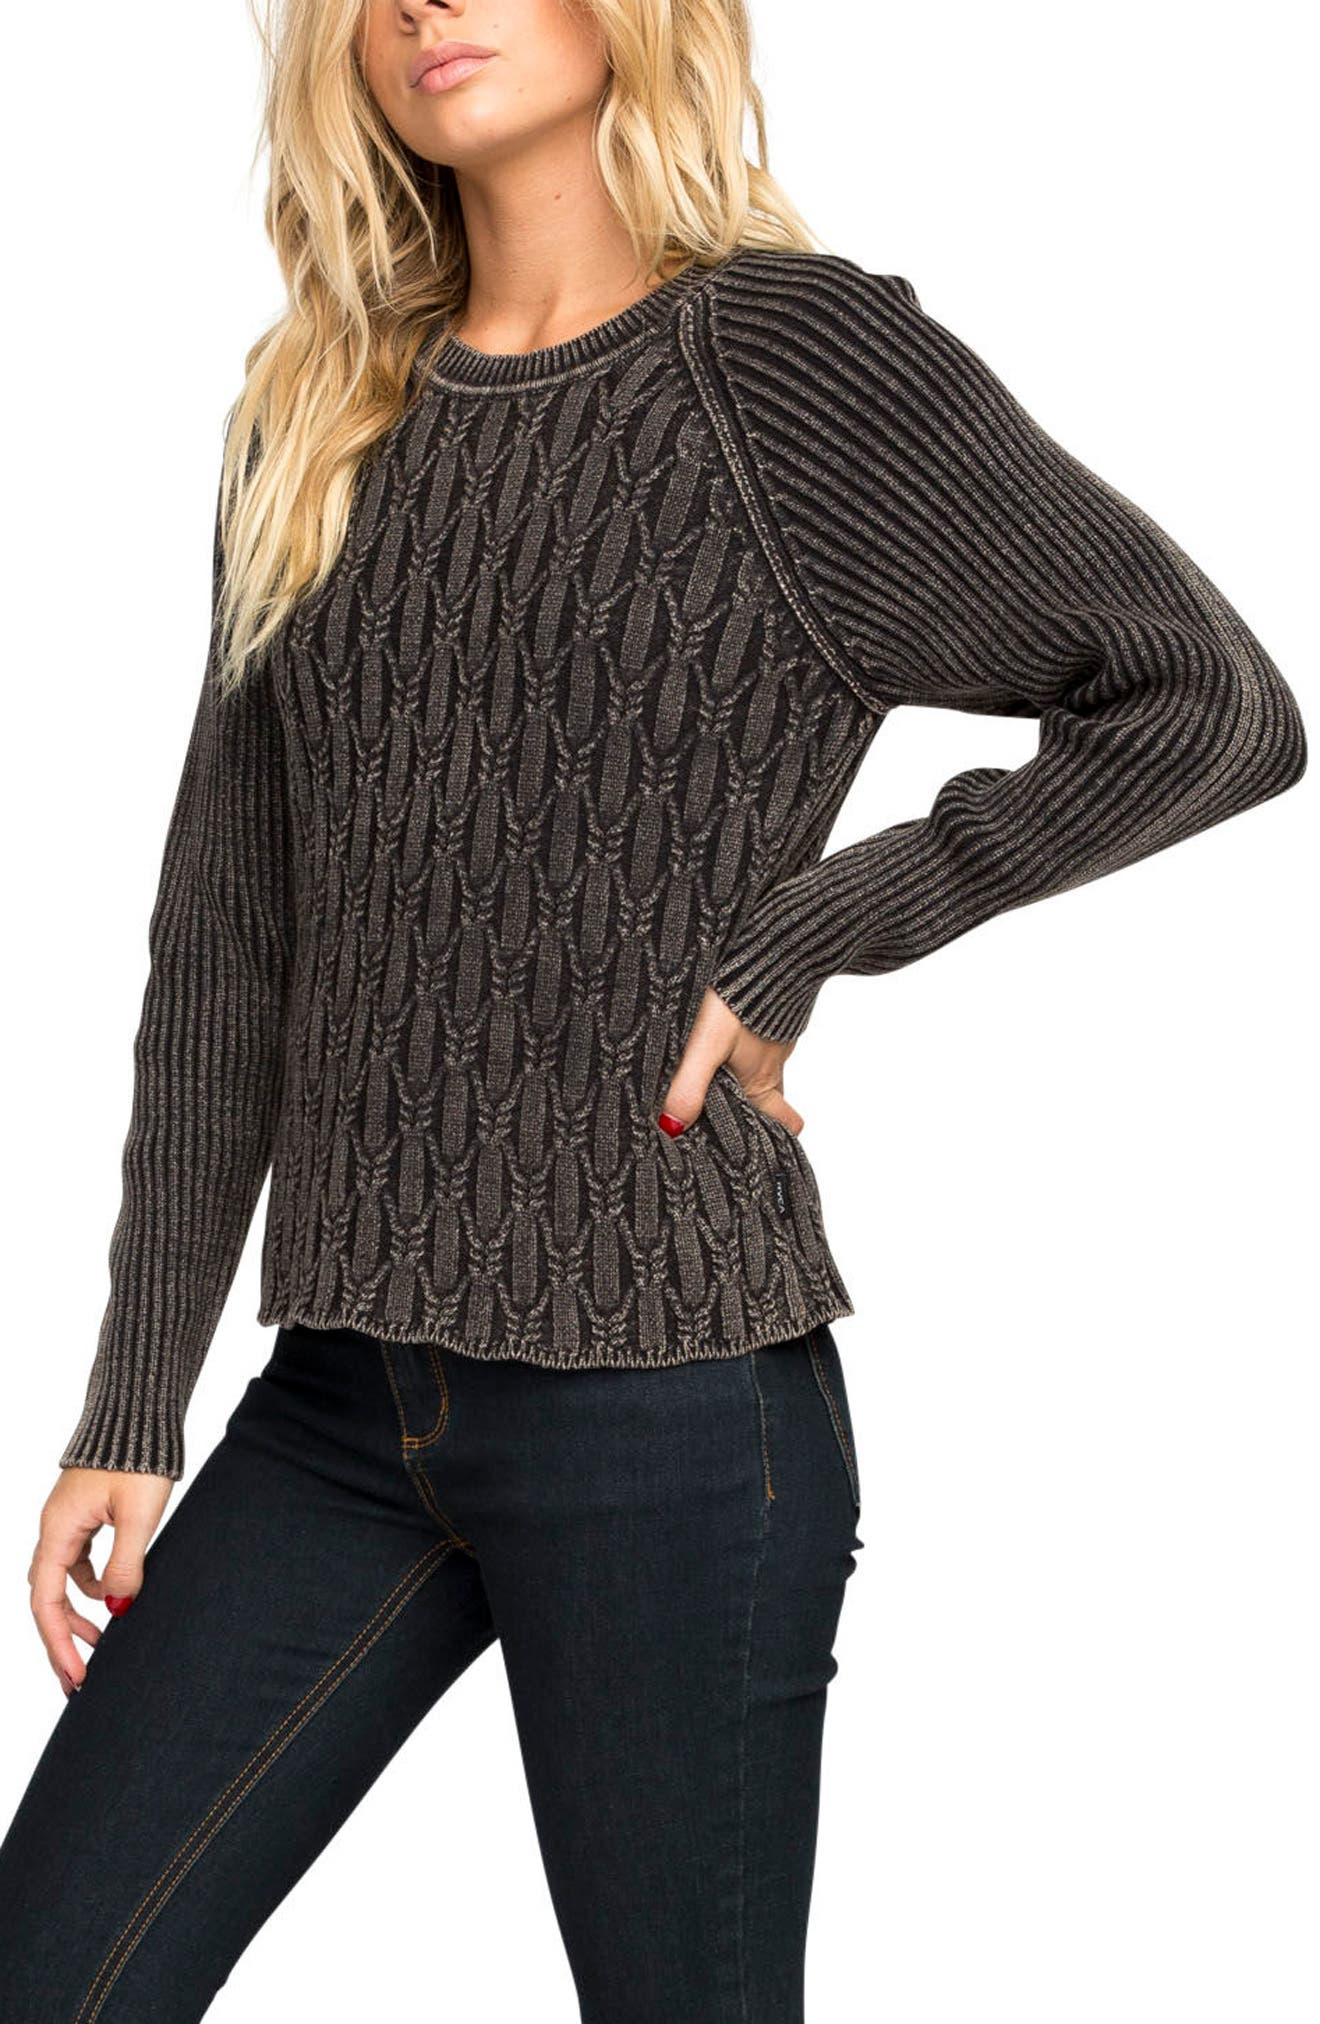 Chained Cotton Sweater,                             Alternate thumbnail 4, color,                             Black